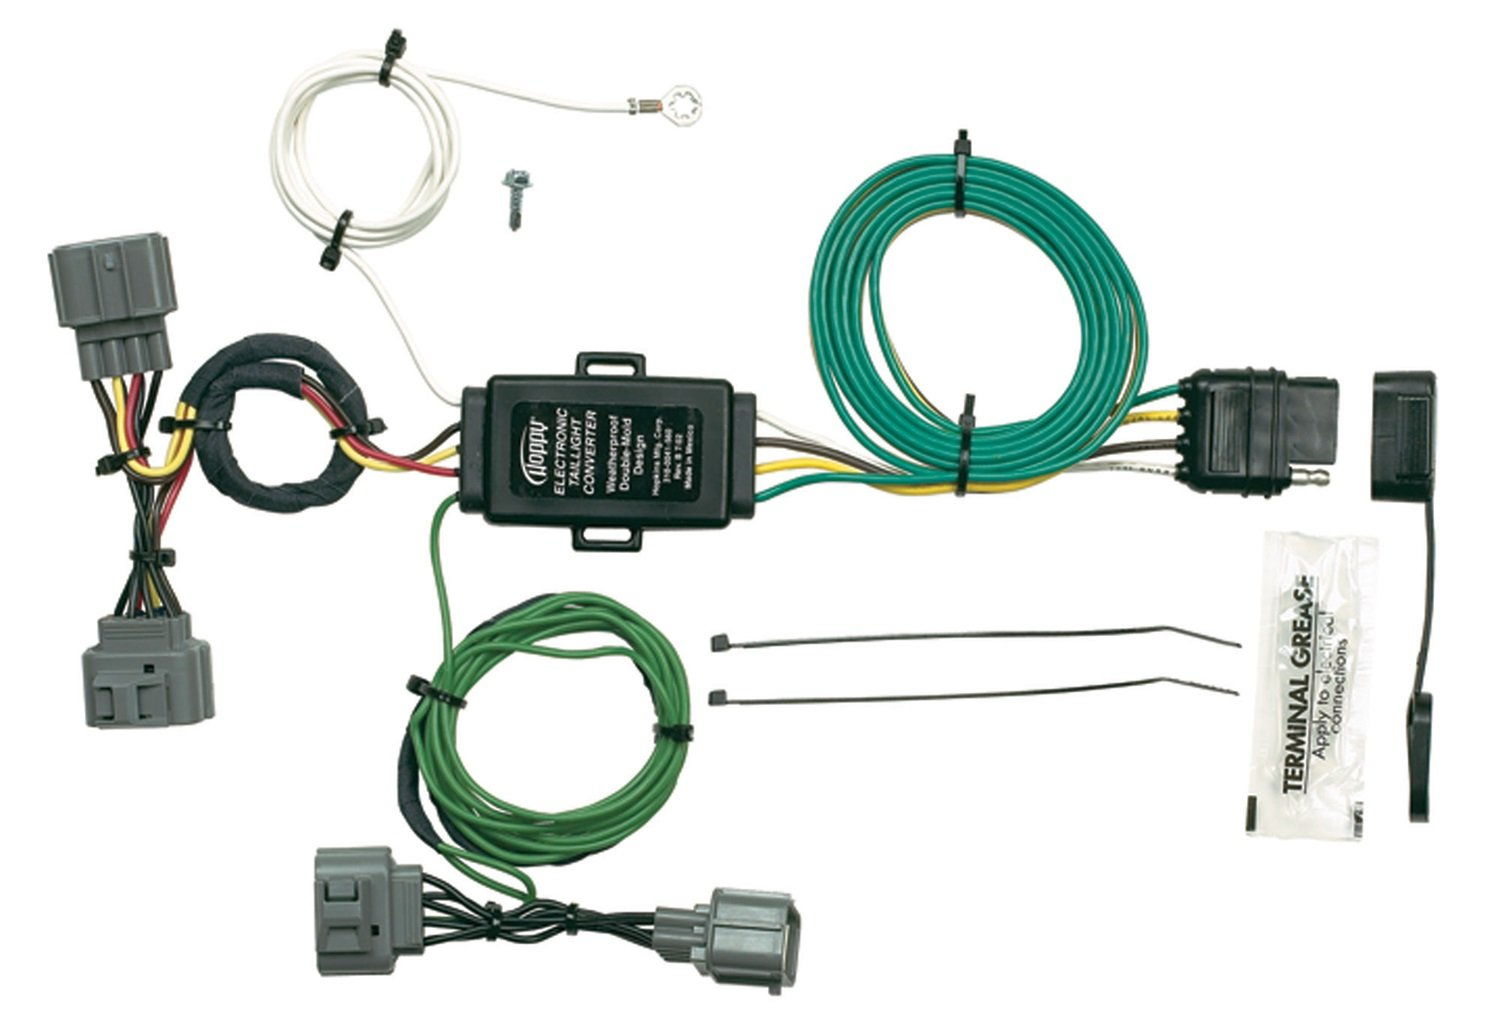 61uhFx0L6RL._SL1500_ amazon com hopkins 43125 plug in simple vehicle wiring kit 2013 honda ridgeline trailer wiring harness at aneh.co